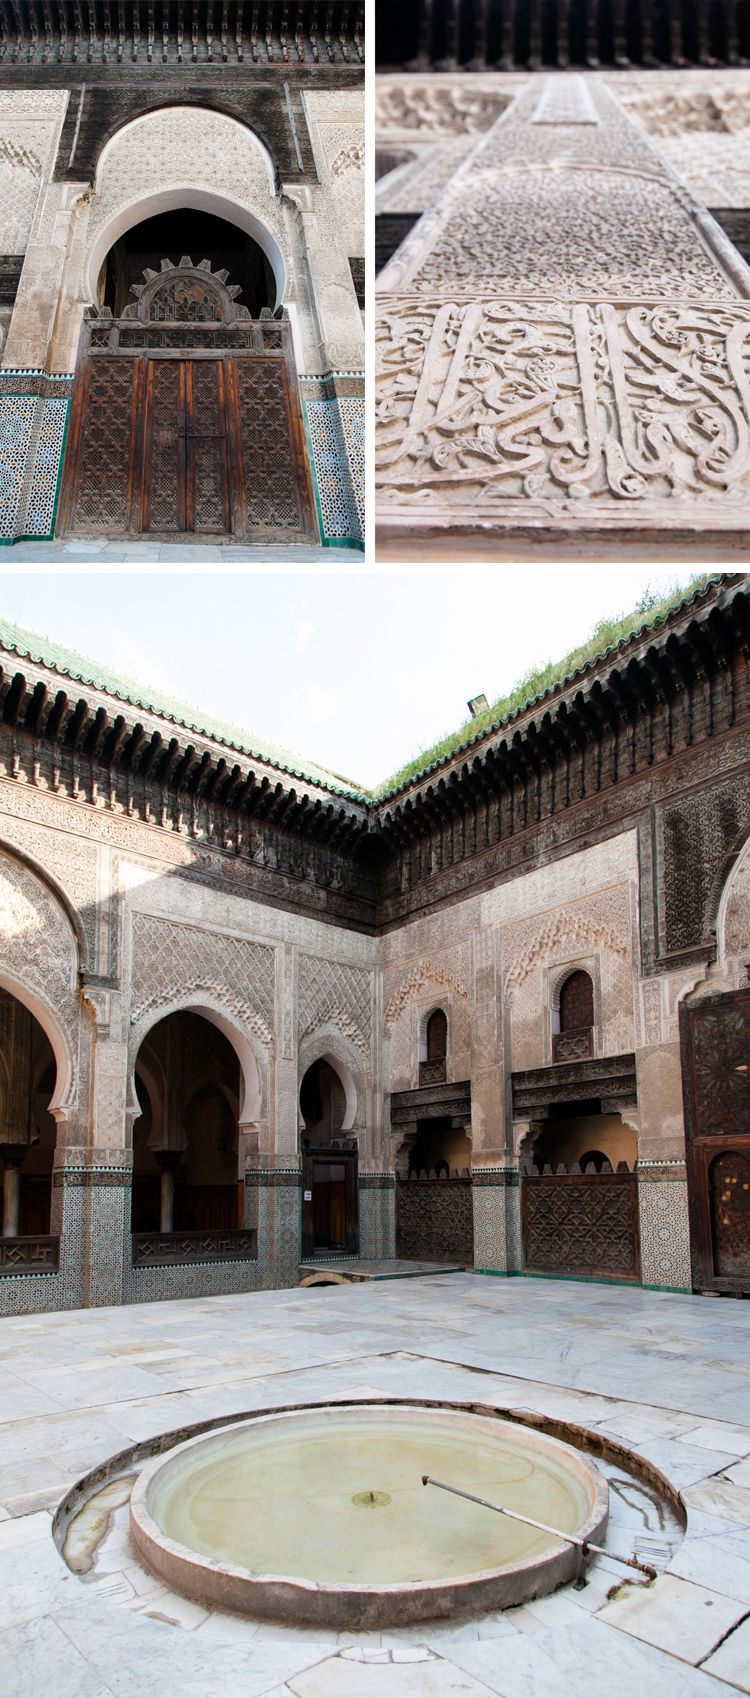 Architecture details at Medersa Bou Inania, Fez, Morocco